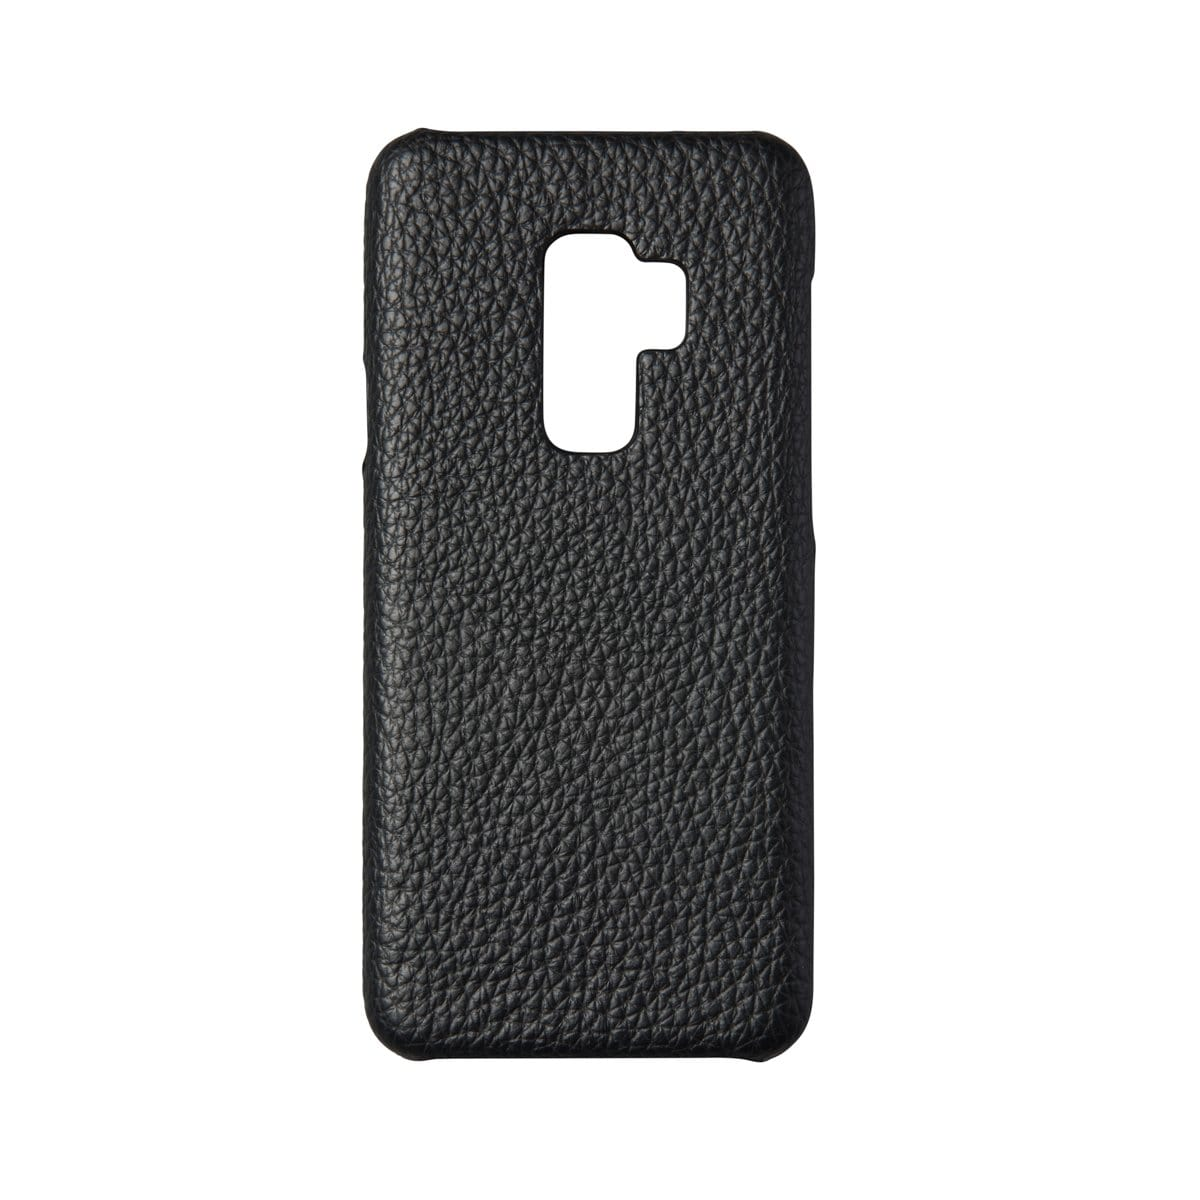 Jet Black Phone Case (Samsung 9+)